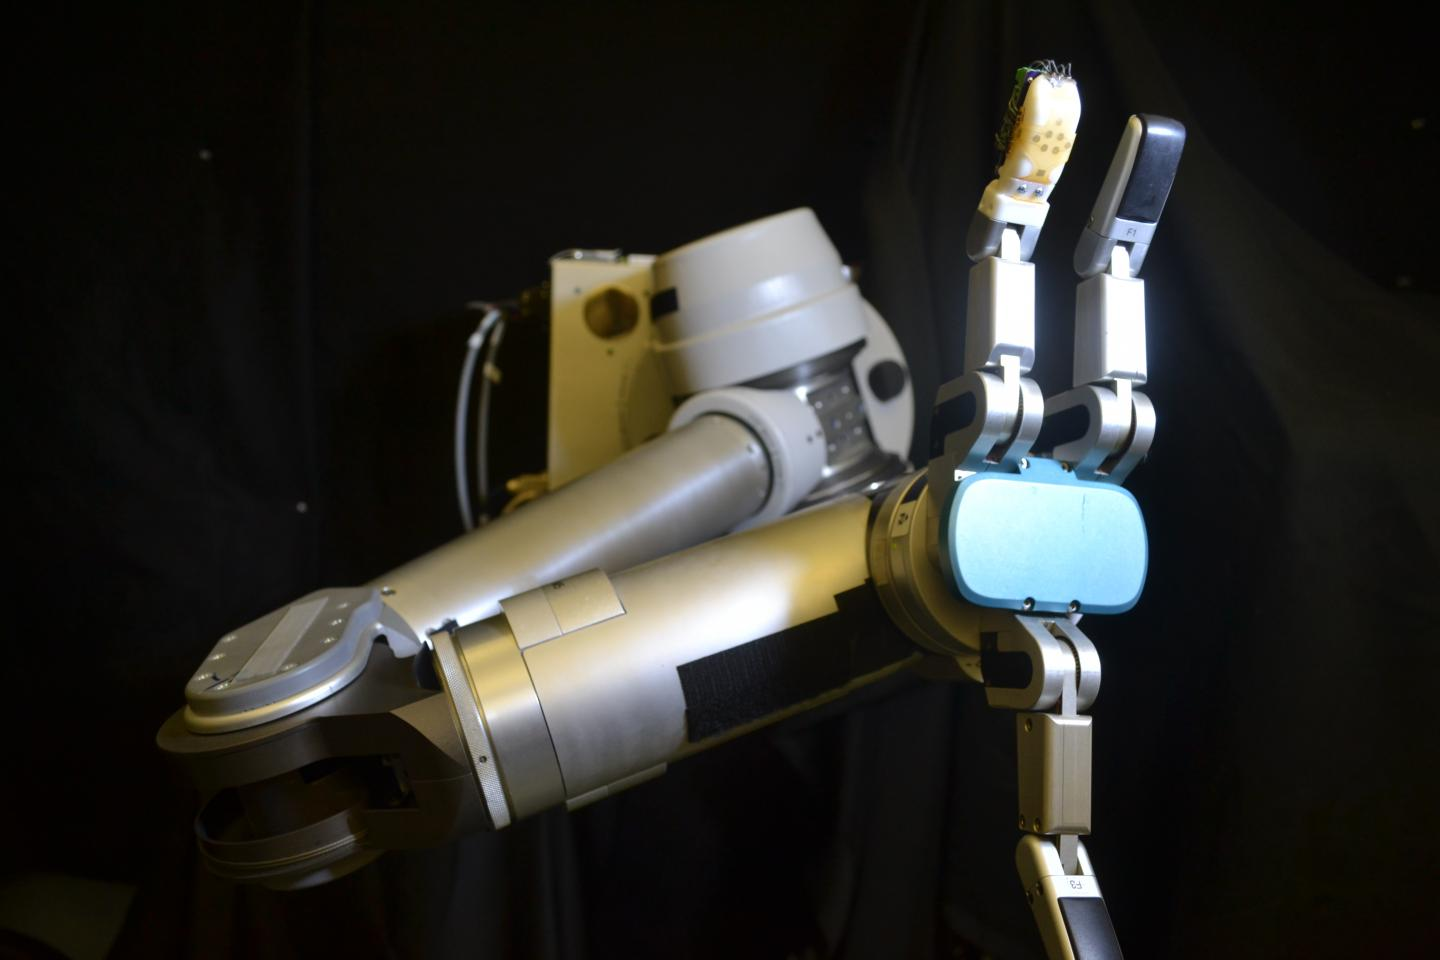 The flexible sensor skin wrapped around the robot finger (orange) is the first to measure shear forces with similar sensitivity as a human hand -- which is critical for successfully gripping and manipulating objects. (UCLA Engineering)